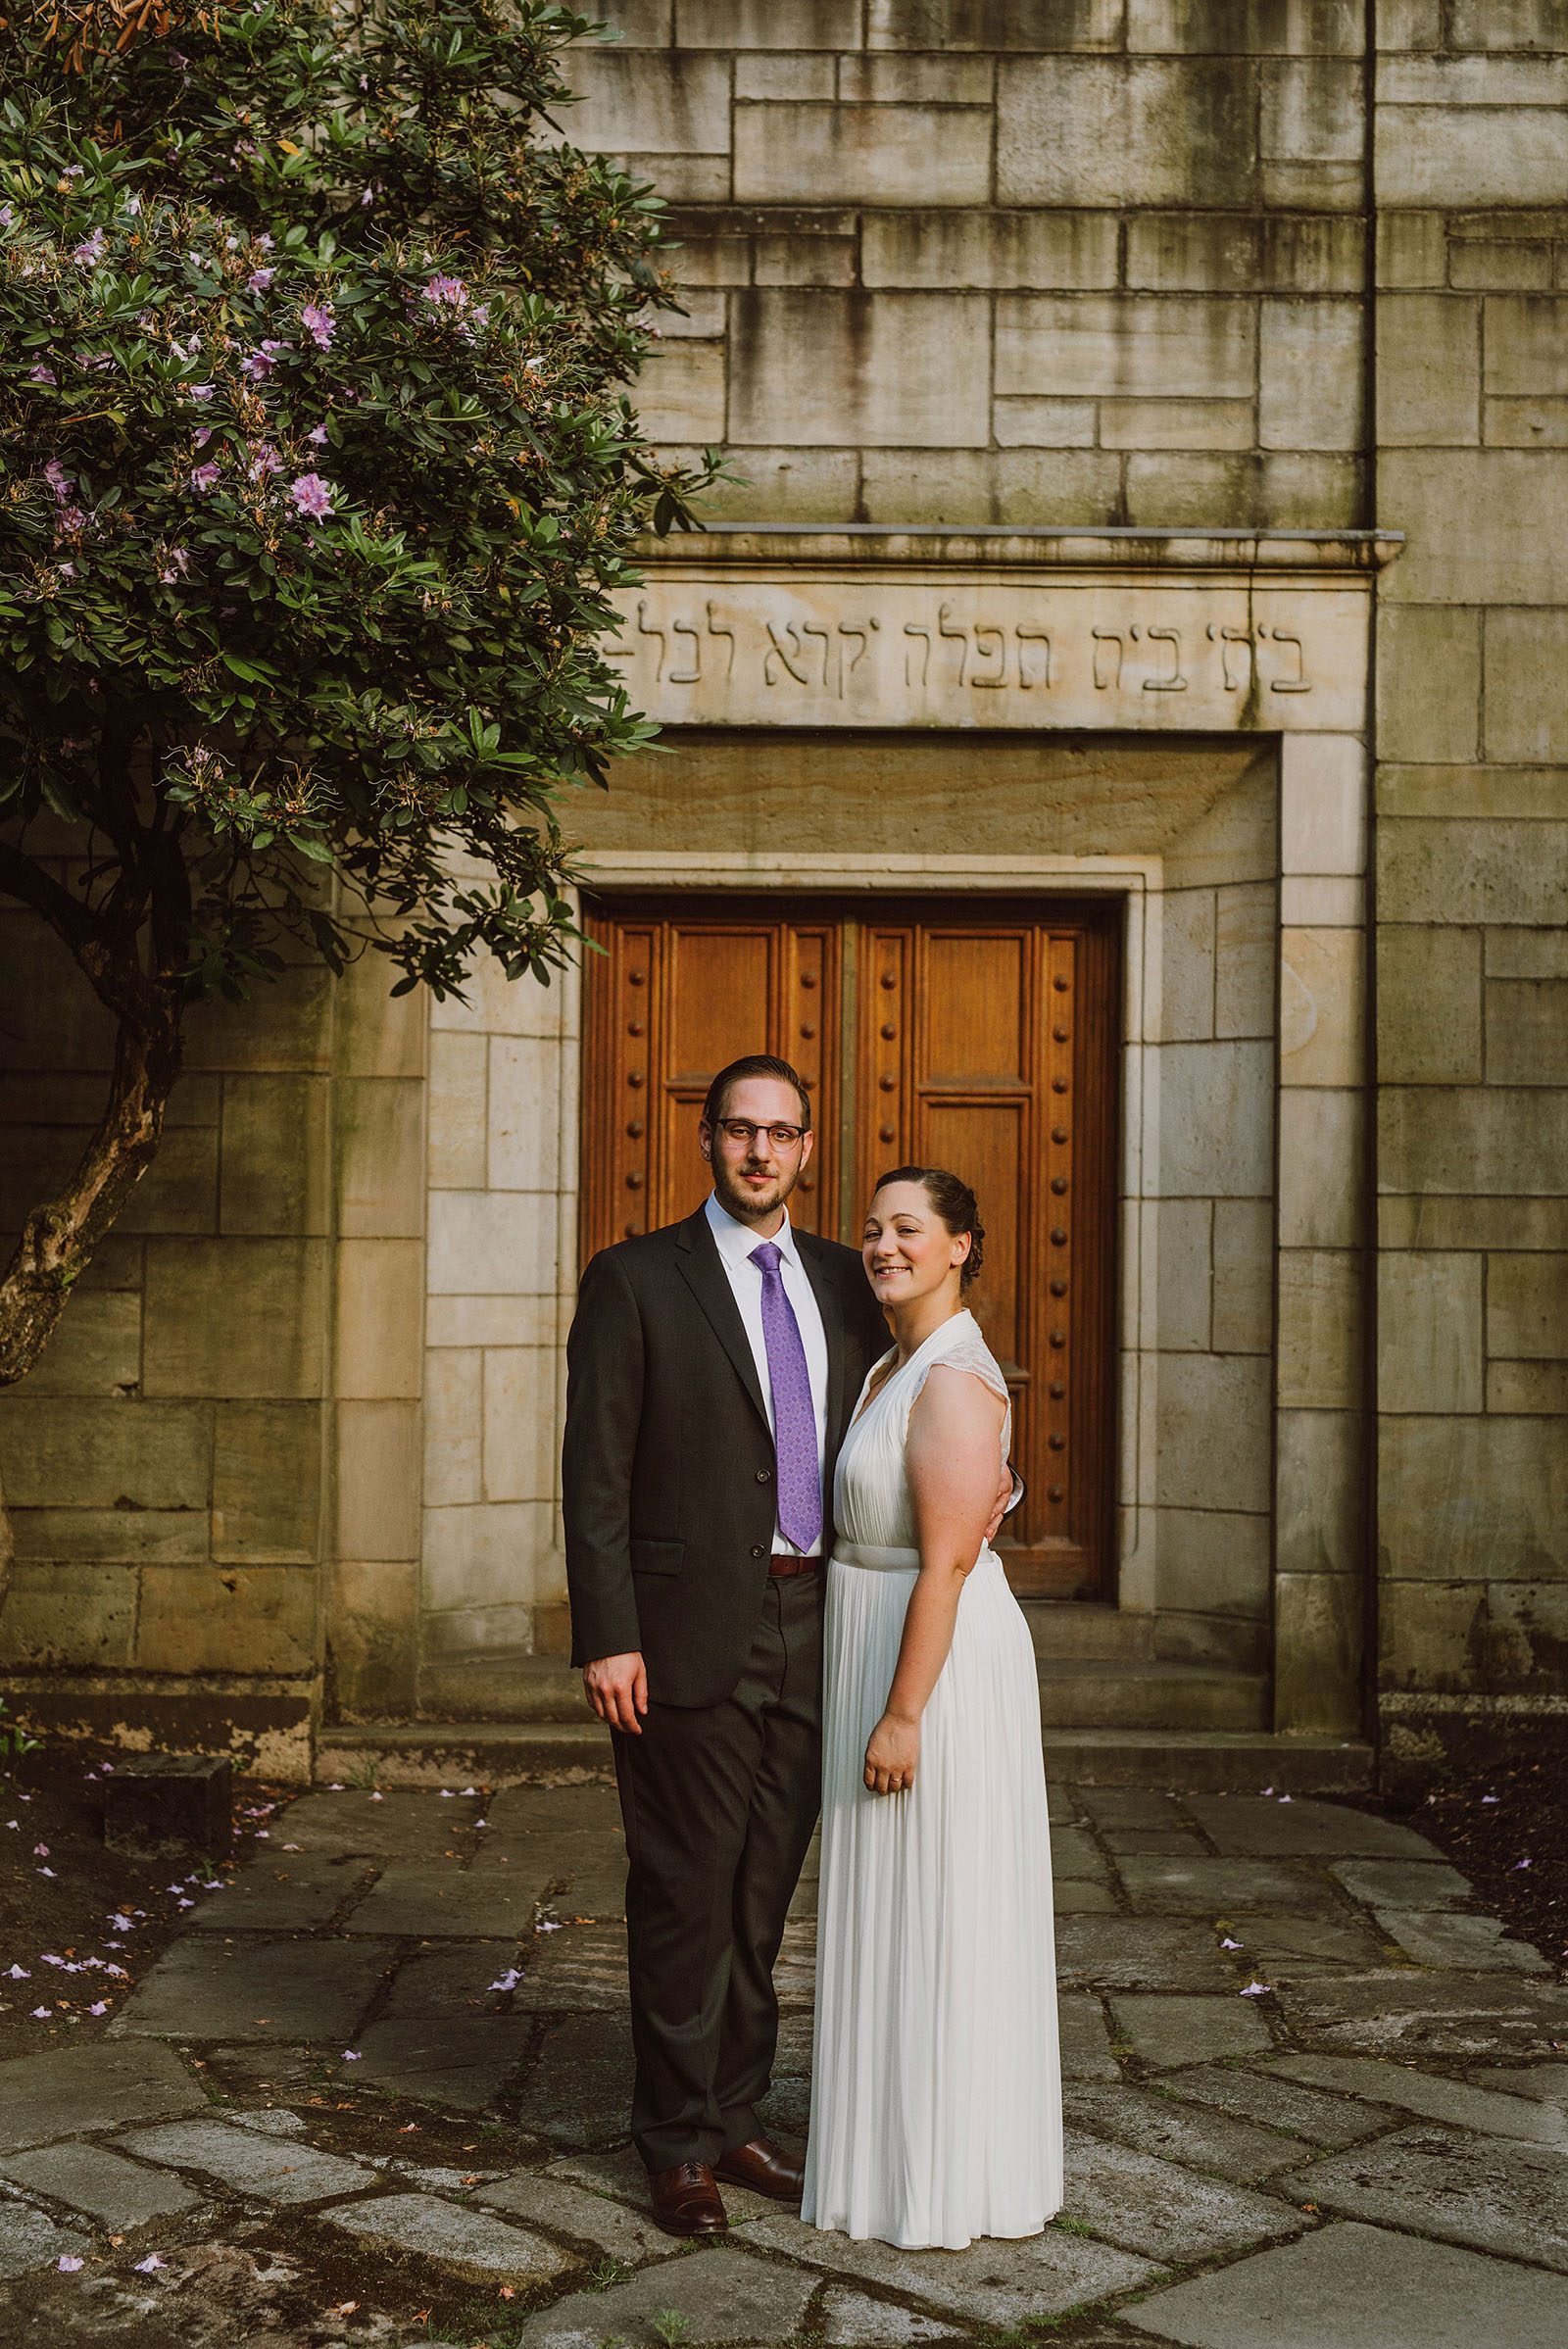 Bride and Groom posing in front of their Congregation Beth Israel wedding in Portland, OR